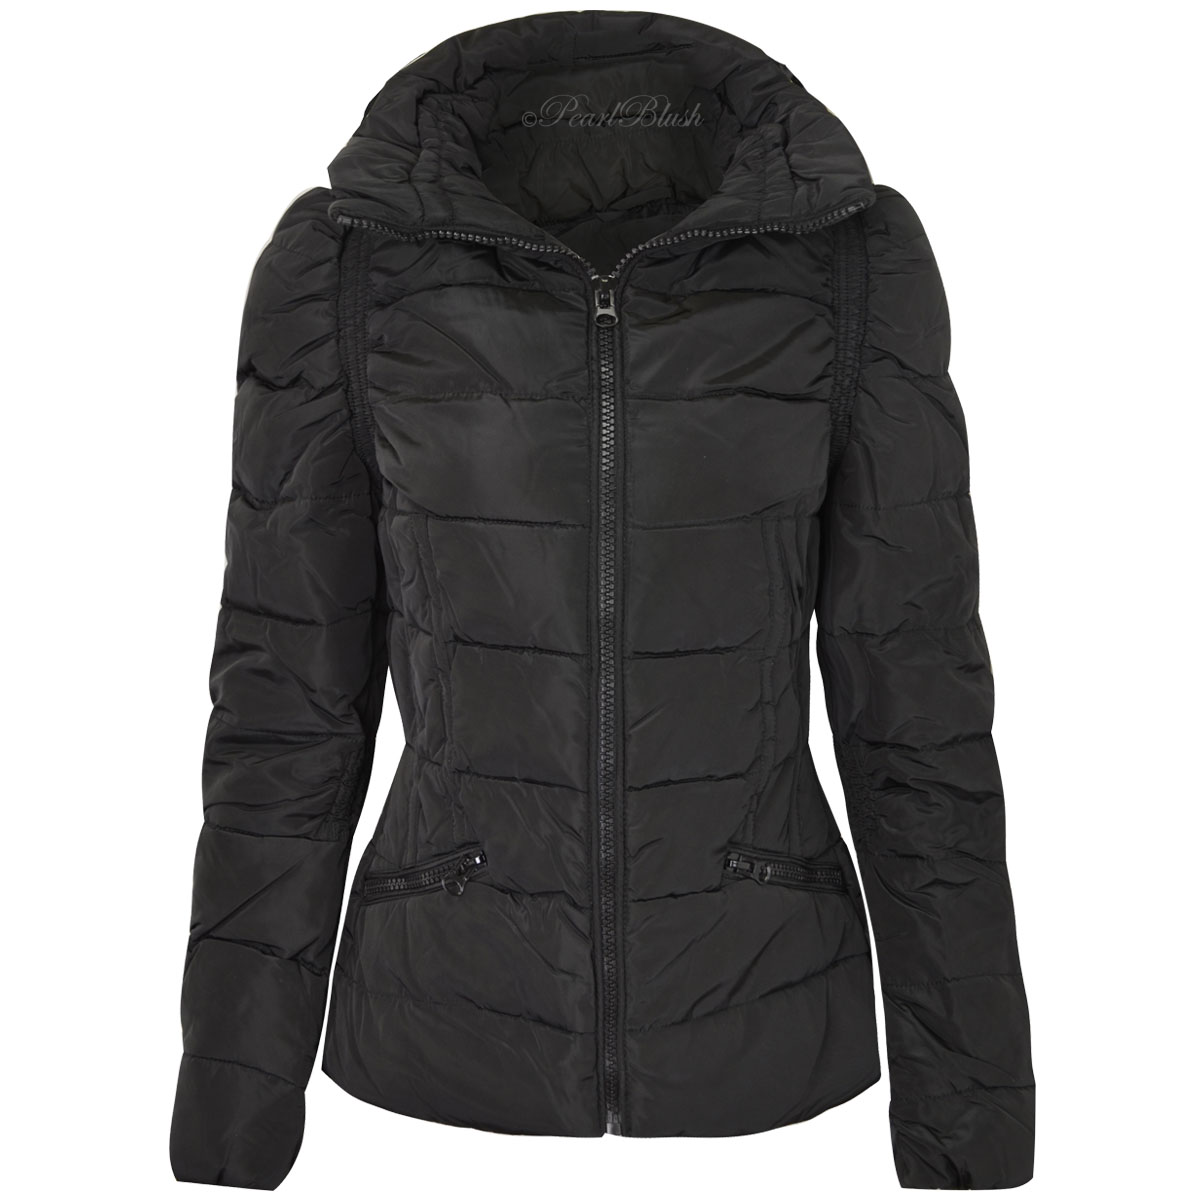 Find great deals on eBay for girls padded jacket. Shop with confidence.